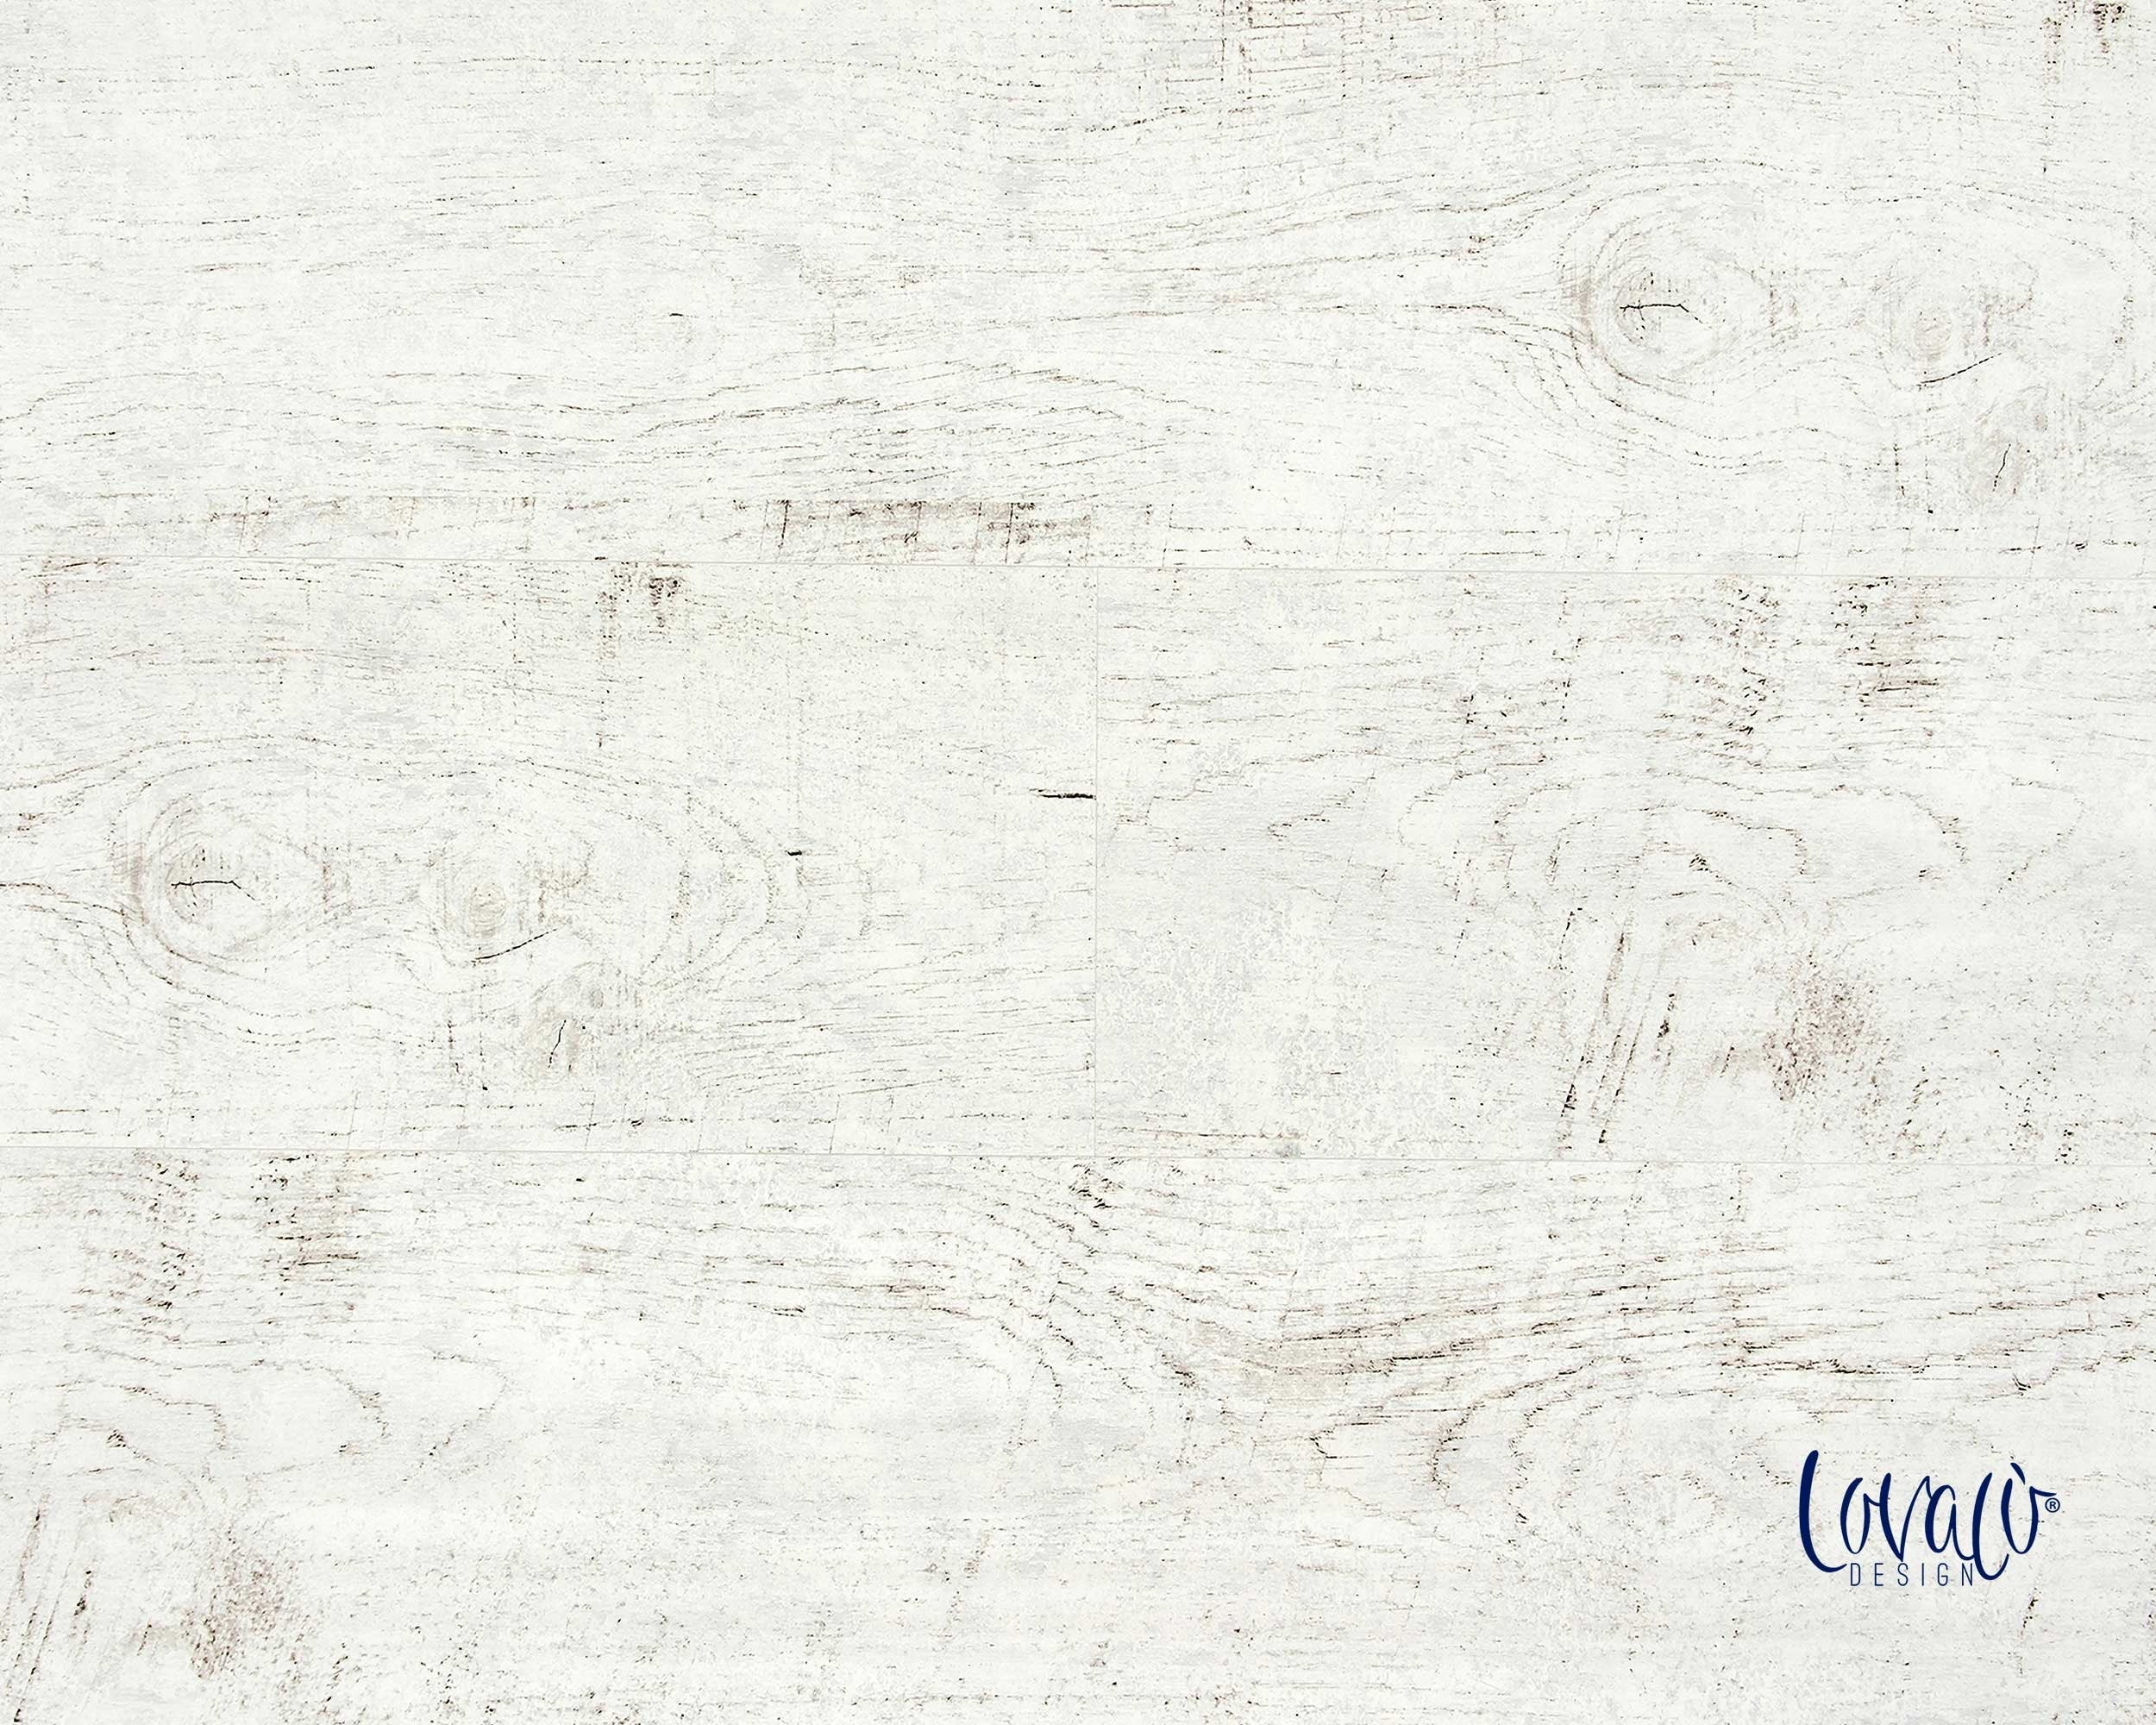 Rustic white Wood Vinyl Photo Backdrop for Product, Instagram, Flat lay & Food Photography - Lov401